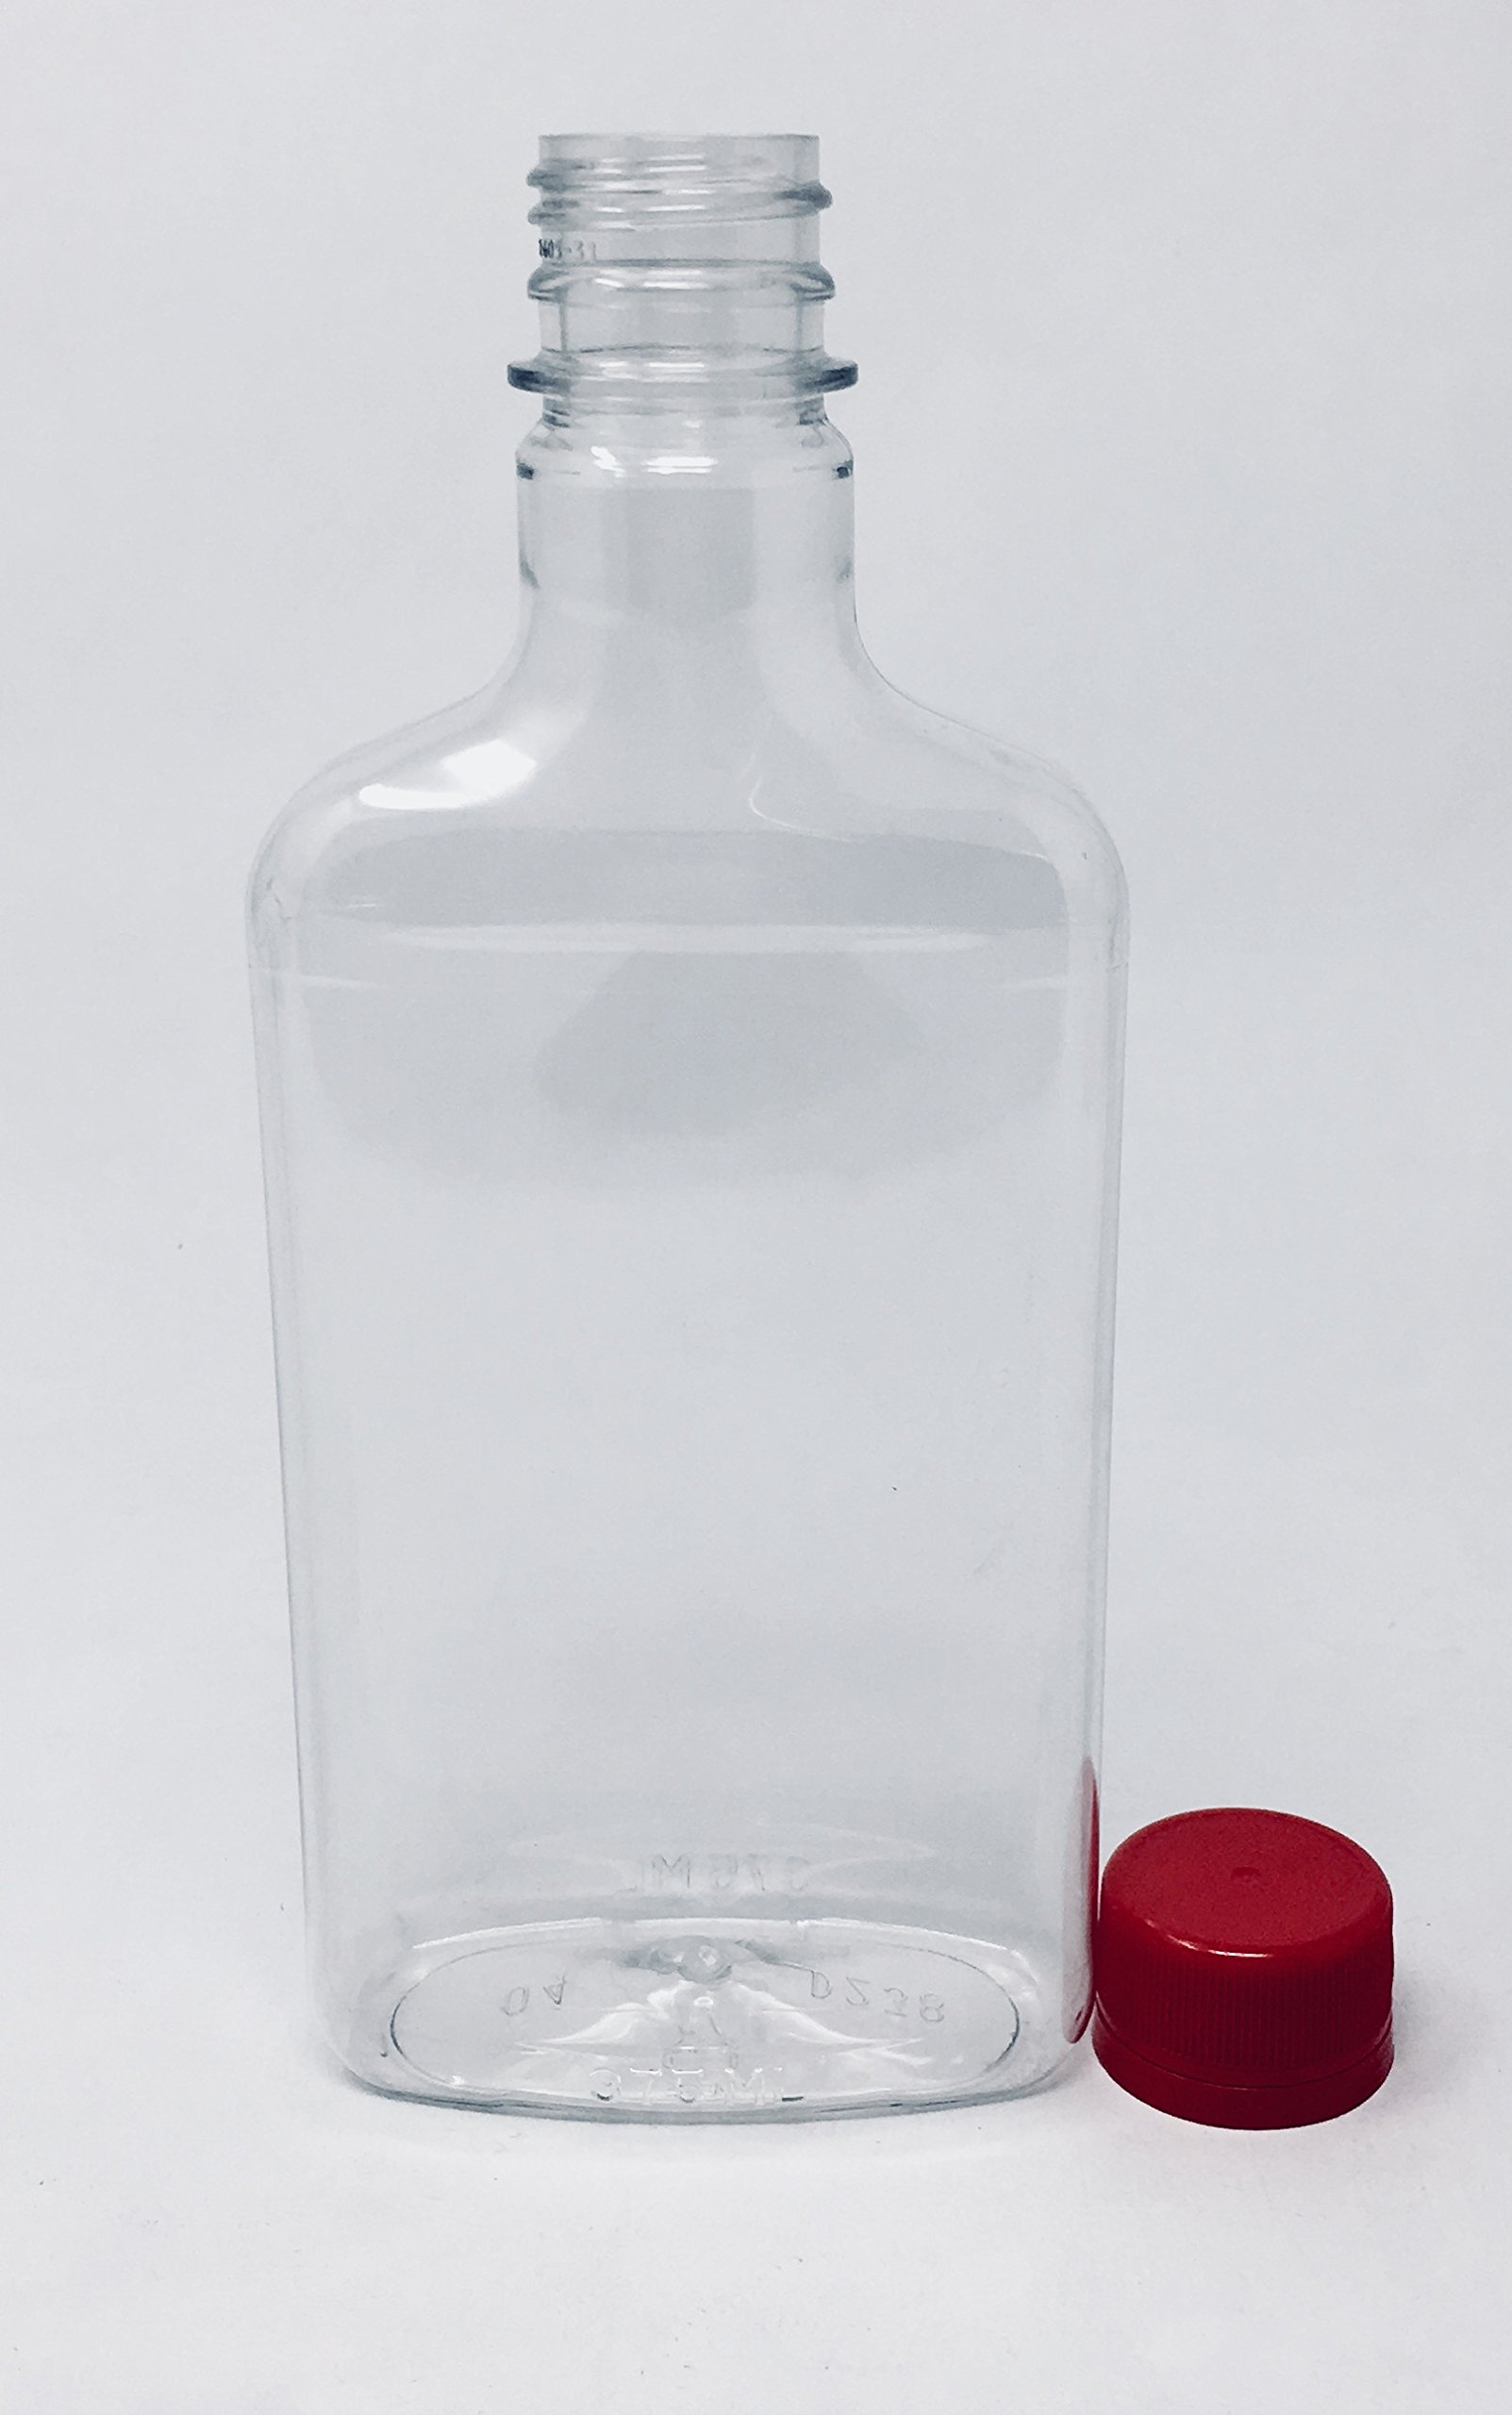 375 ml Crystal Clear Plastic Bottle with Red Tamper Evident Lid 10-Pack